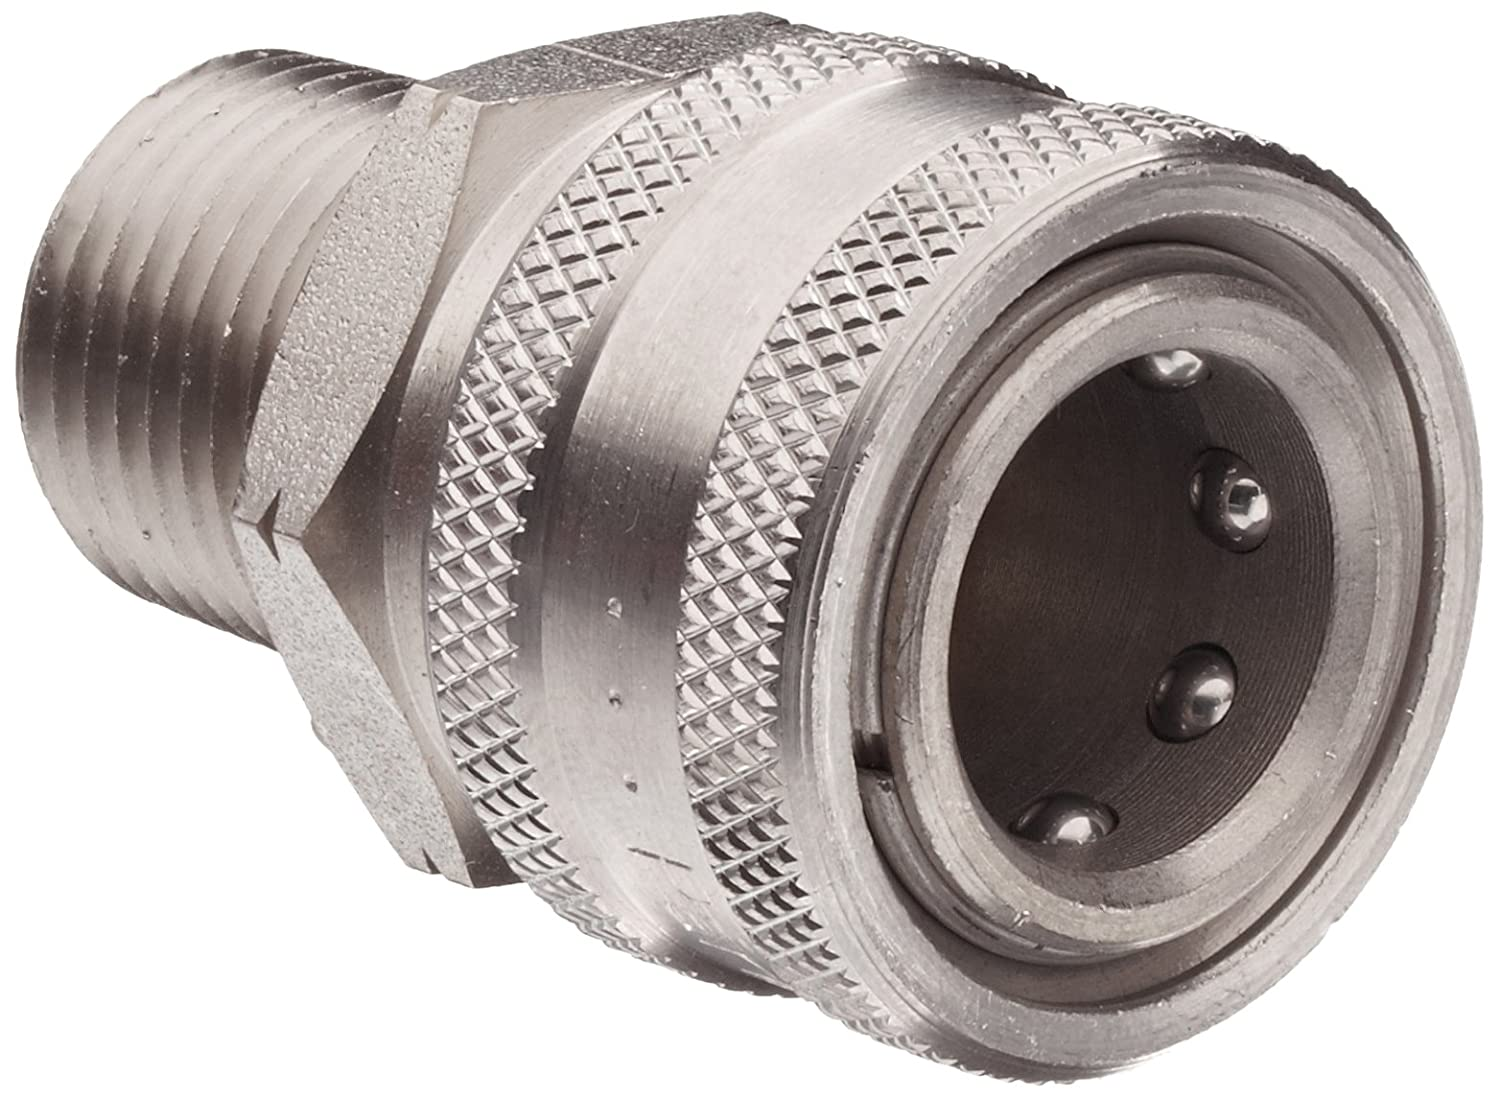 Dixon STMC4SS Stainless Steel 303 Hydraulic Quick-Connect Fitting, Coupler, 1/2 Male Coupling, 1/2-14 Straight Thread sy7220 5lze 02 smc solenoid valve electromagnetic valve pneumatic component air tools sy7000 series